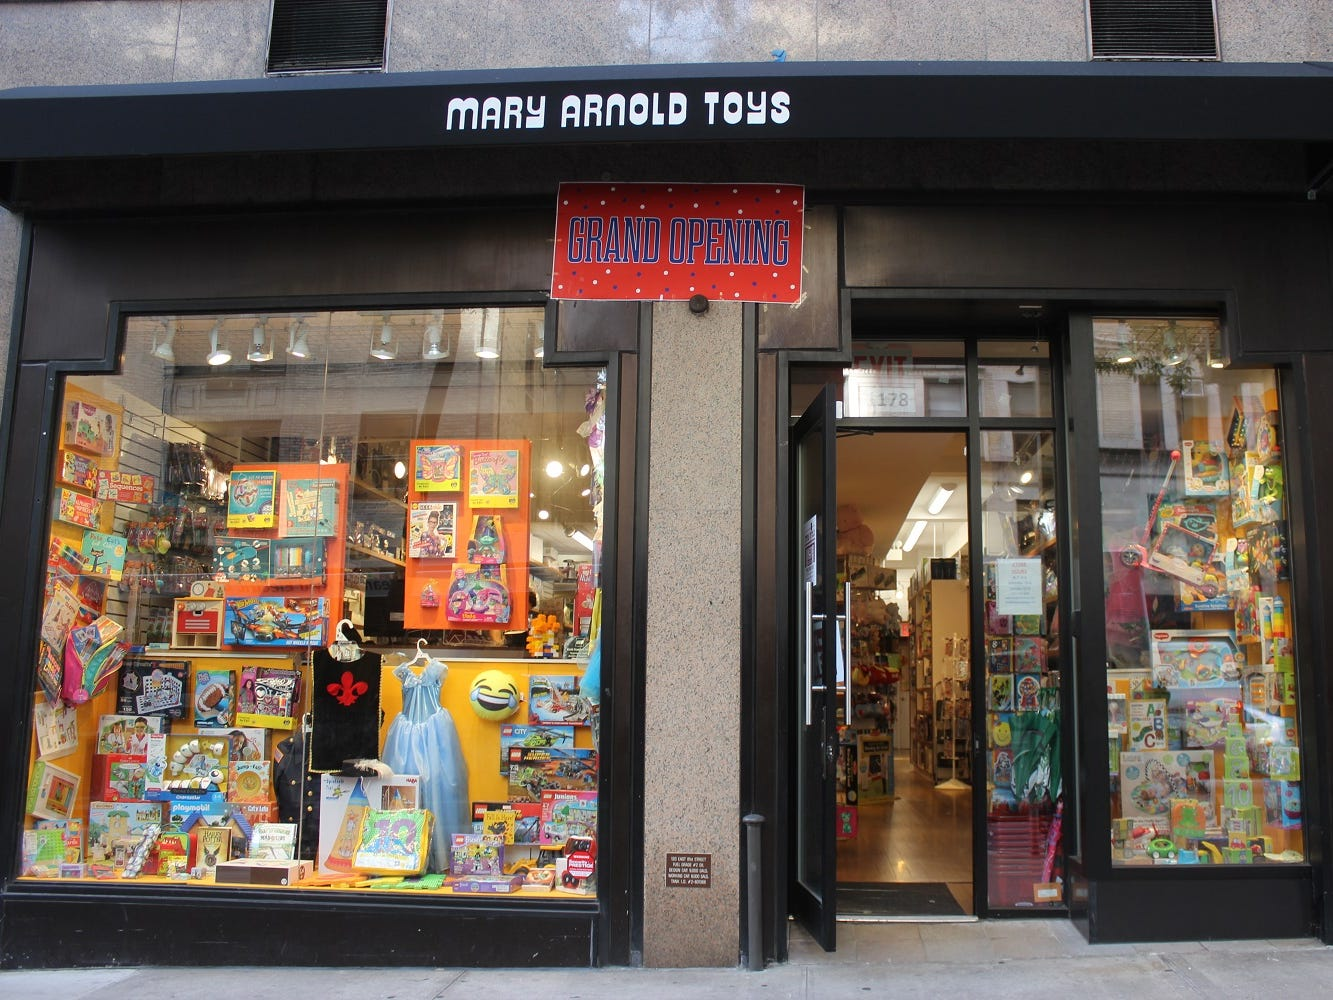 New York's Mary Arnold Toys calls itself the country's oldest continually running toy store. It opened in 1931, and offers Manhattan touches like a personal shopping service, both in-person or on the phone.